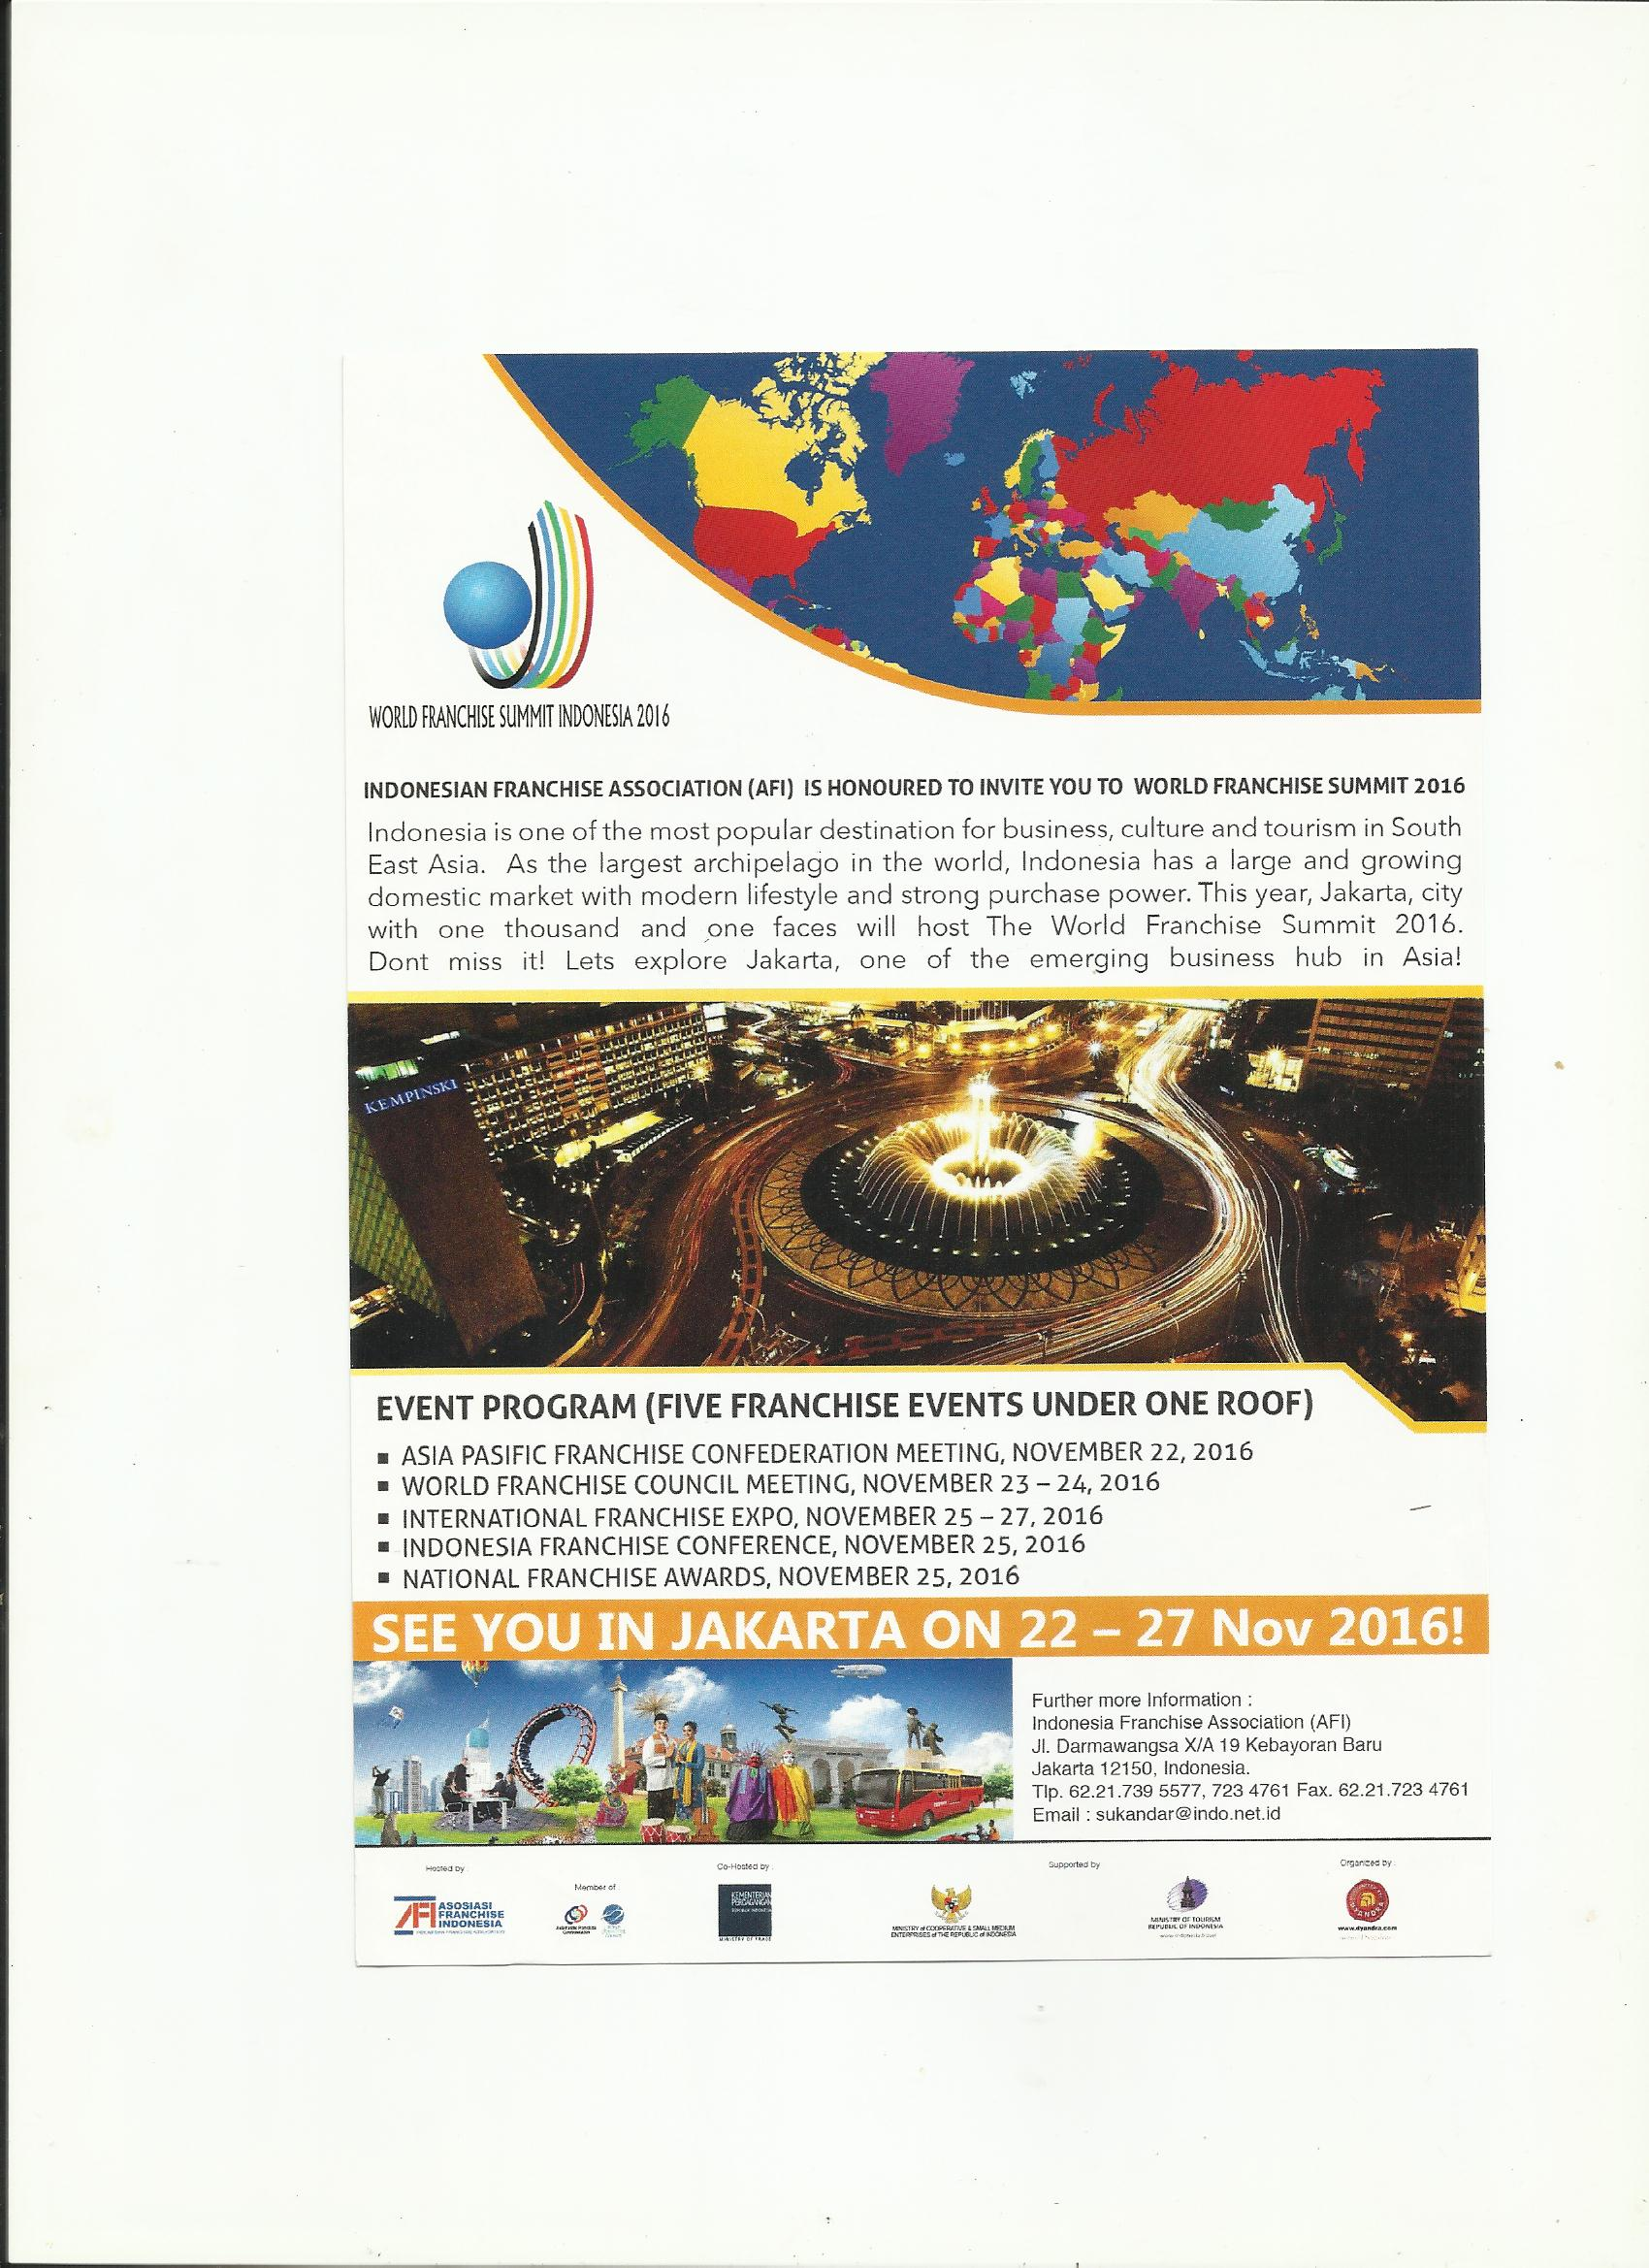 World Franchise Summit Indonesia 2016